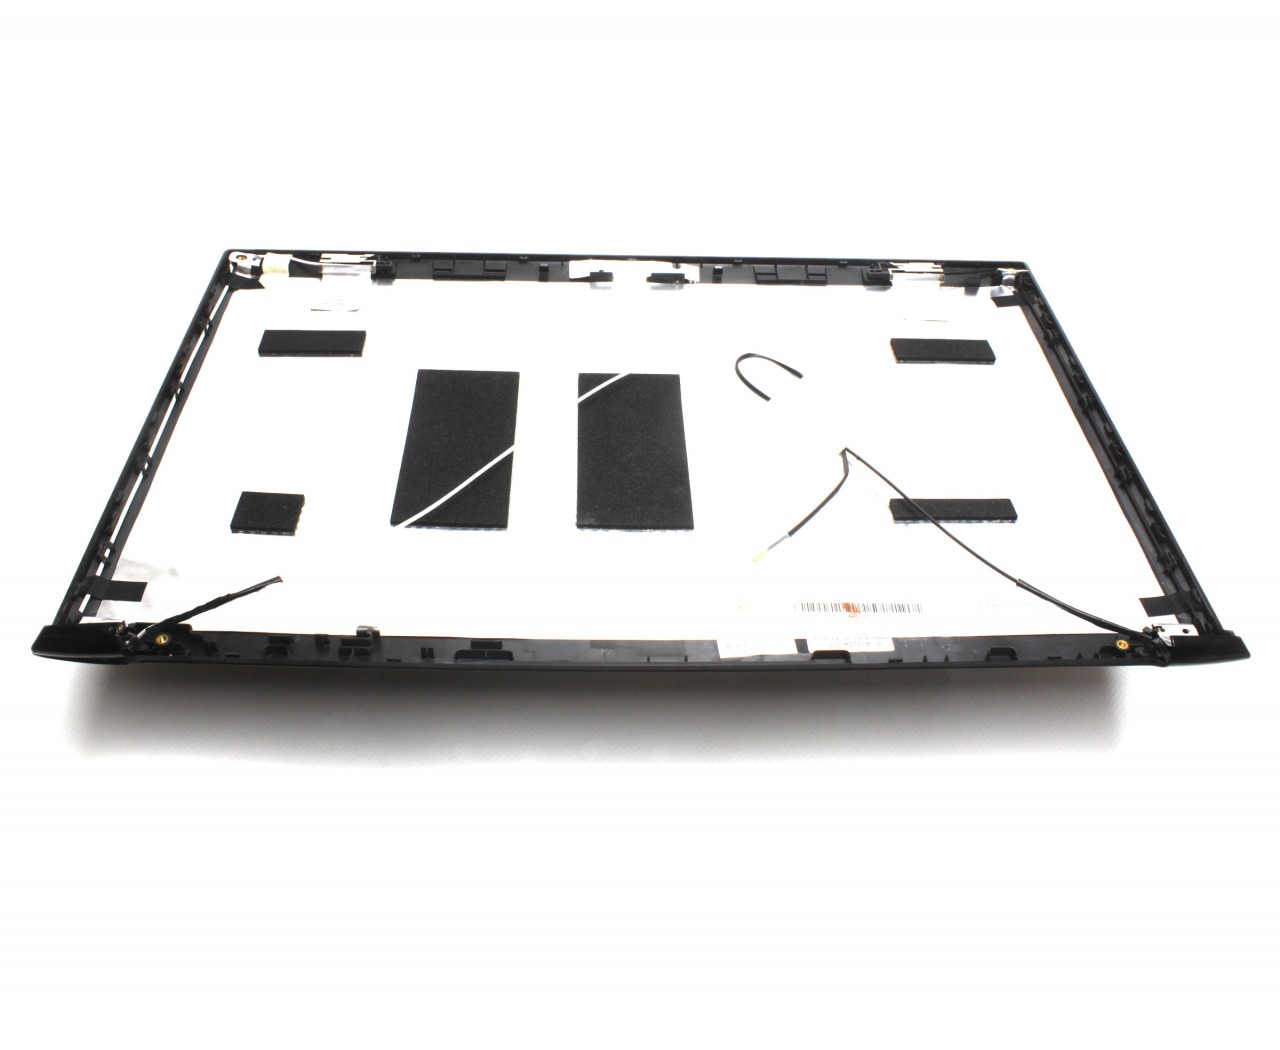 Capac Display BackCover IBM Lenovo 60 4JW19 011 Carcasa Display imagine powerlaptop.ro 2021